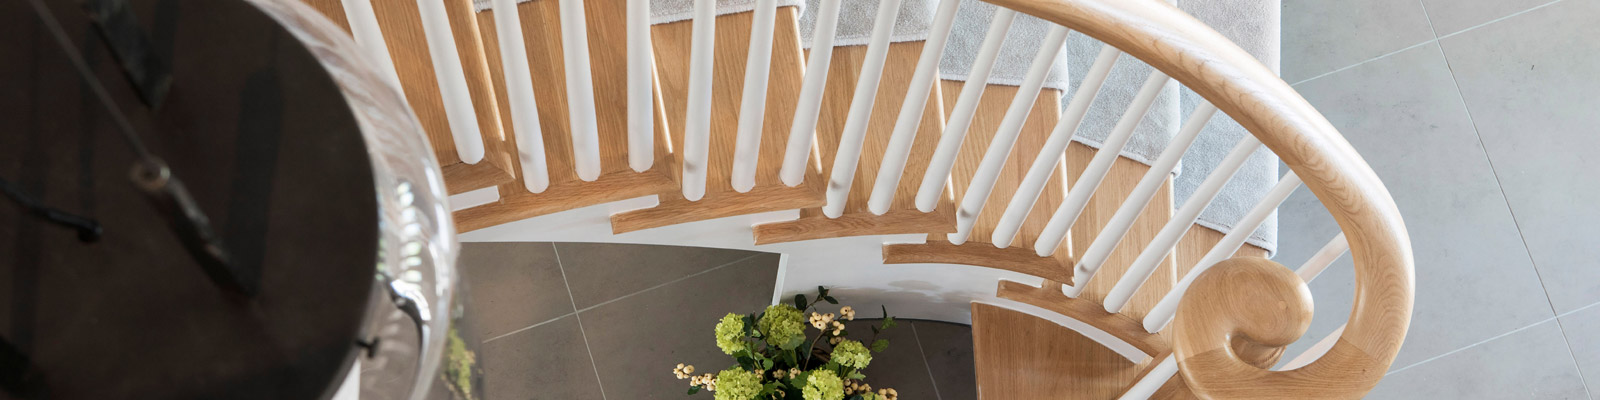 Ensoul New Build Staircase Sweeping staircase oak handrail staircase pendant 2